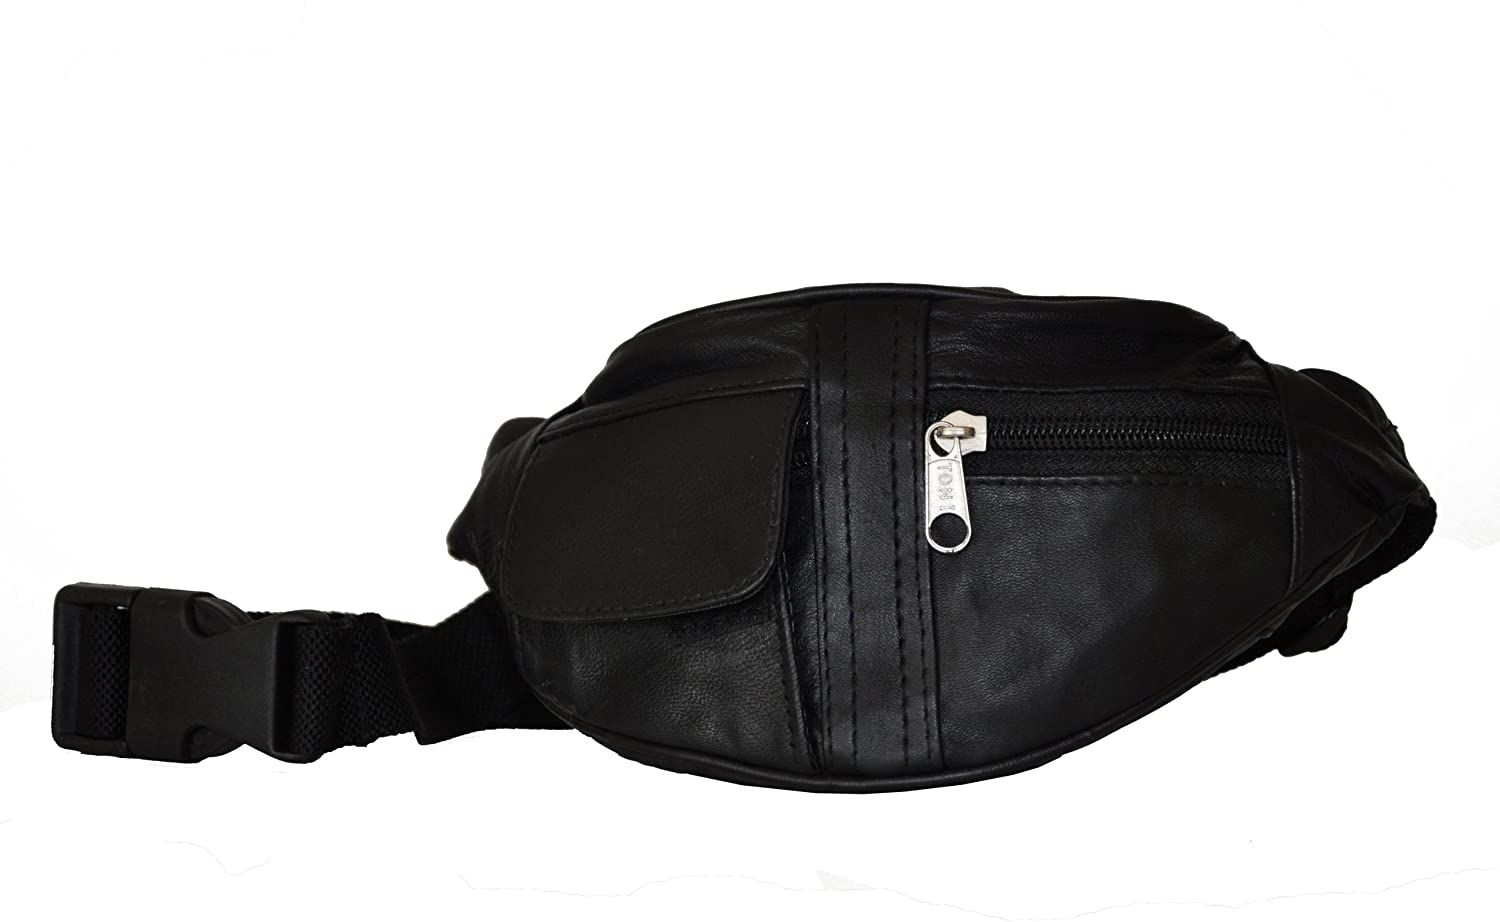 Leatherboss Mini Fanny Pack for Running/jogging - Black